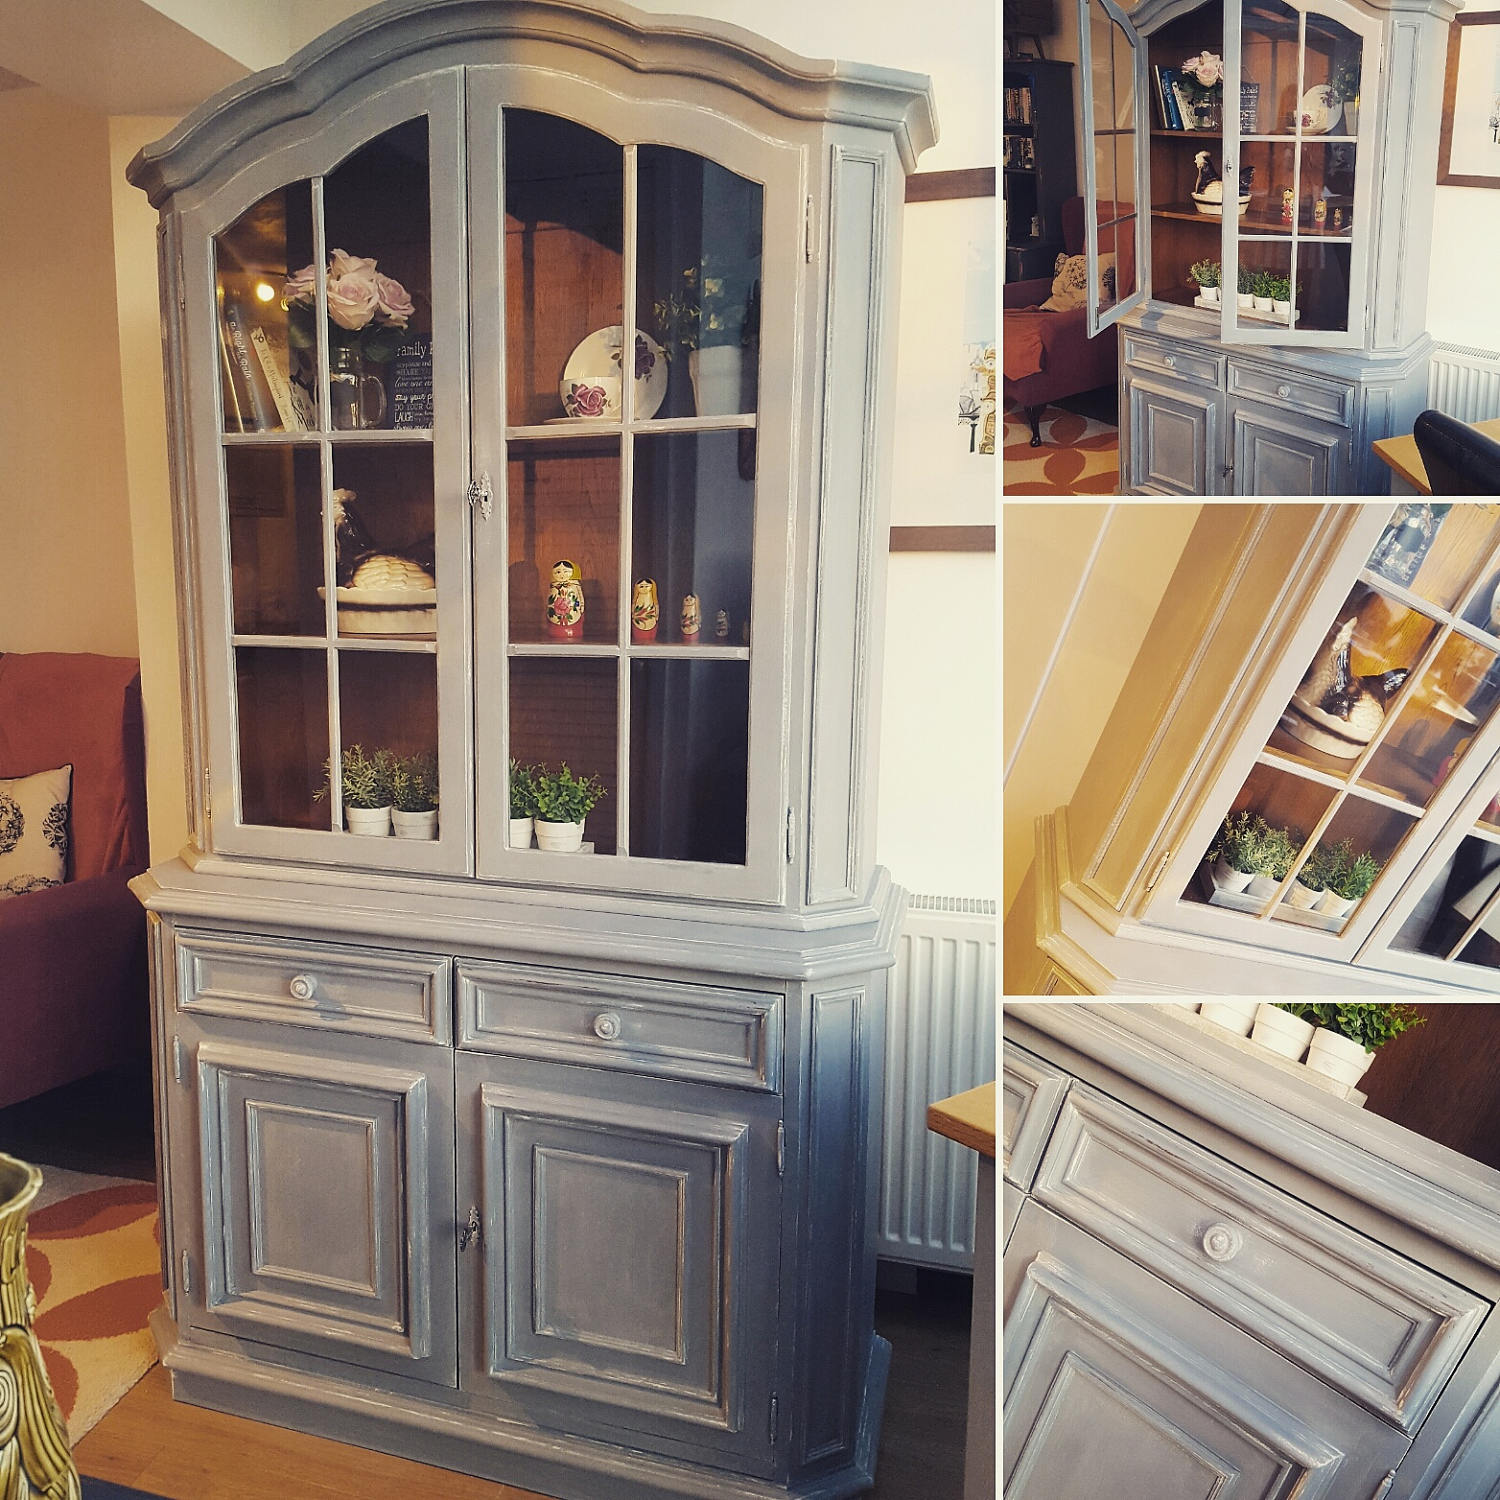 Display cabinet  glass fronted dresser  shabby chic  rustic dresser  cupboard  glass fronted unit  shabby chic vintage